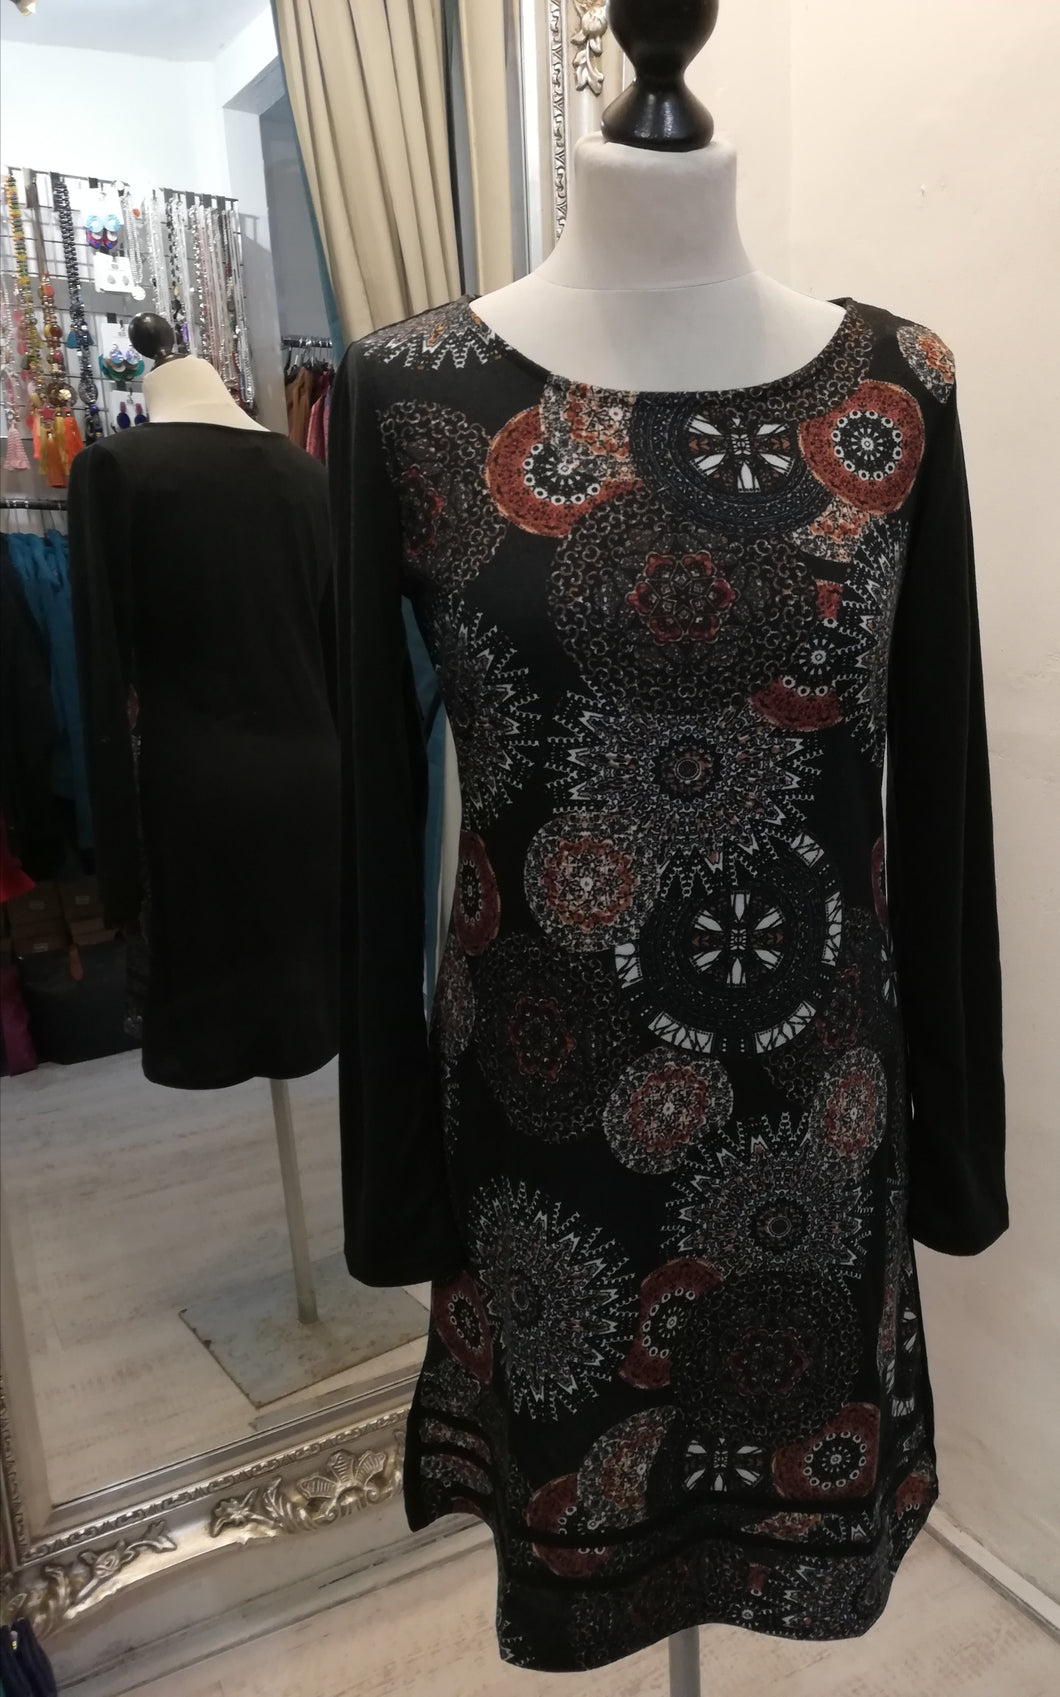 Coline Black Pattern Dress size S (6/8) NO RETURN